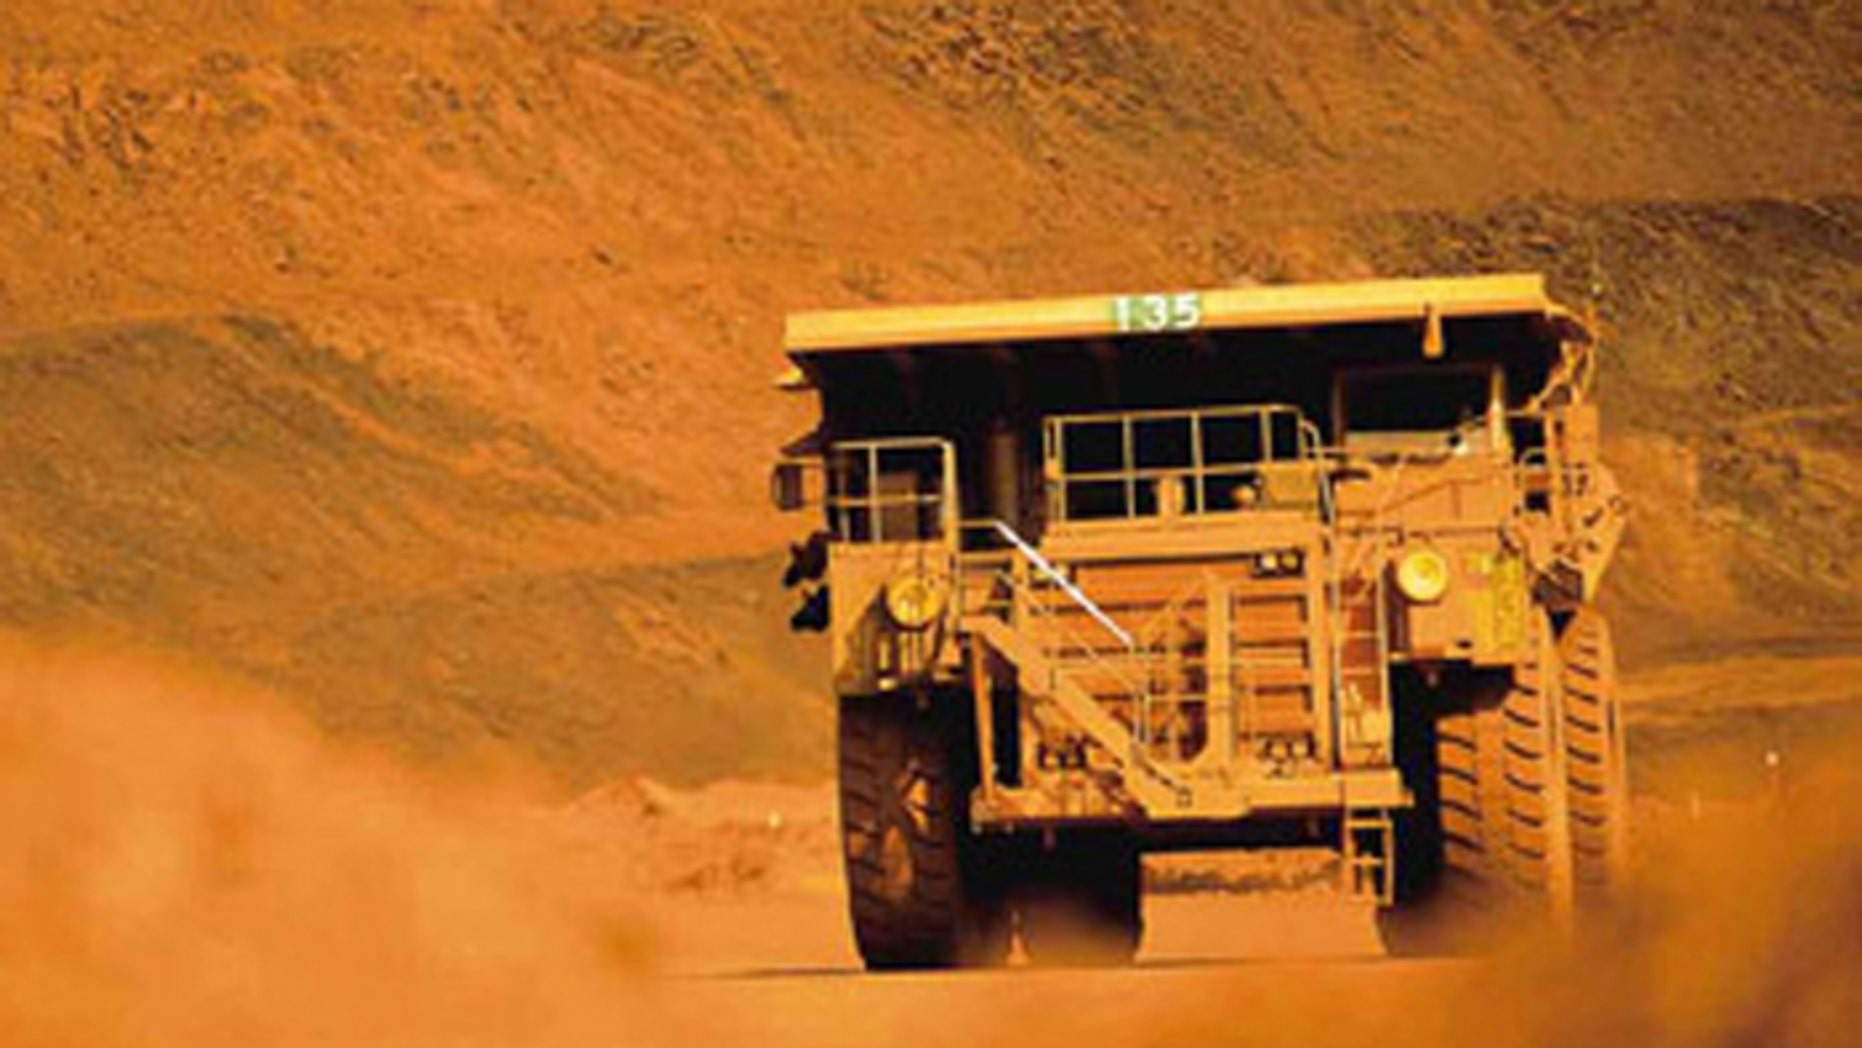 Truckers and train drivers who haul iron ore in Australia's remote Pilbarra region earn an average of $225,000 a year, but the companies that employ them are replacing them with robots. (Handout: BHP Billiton)